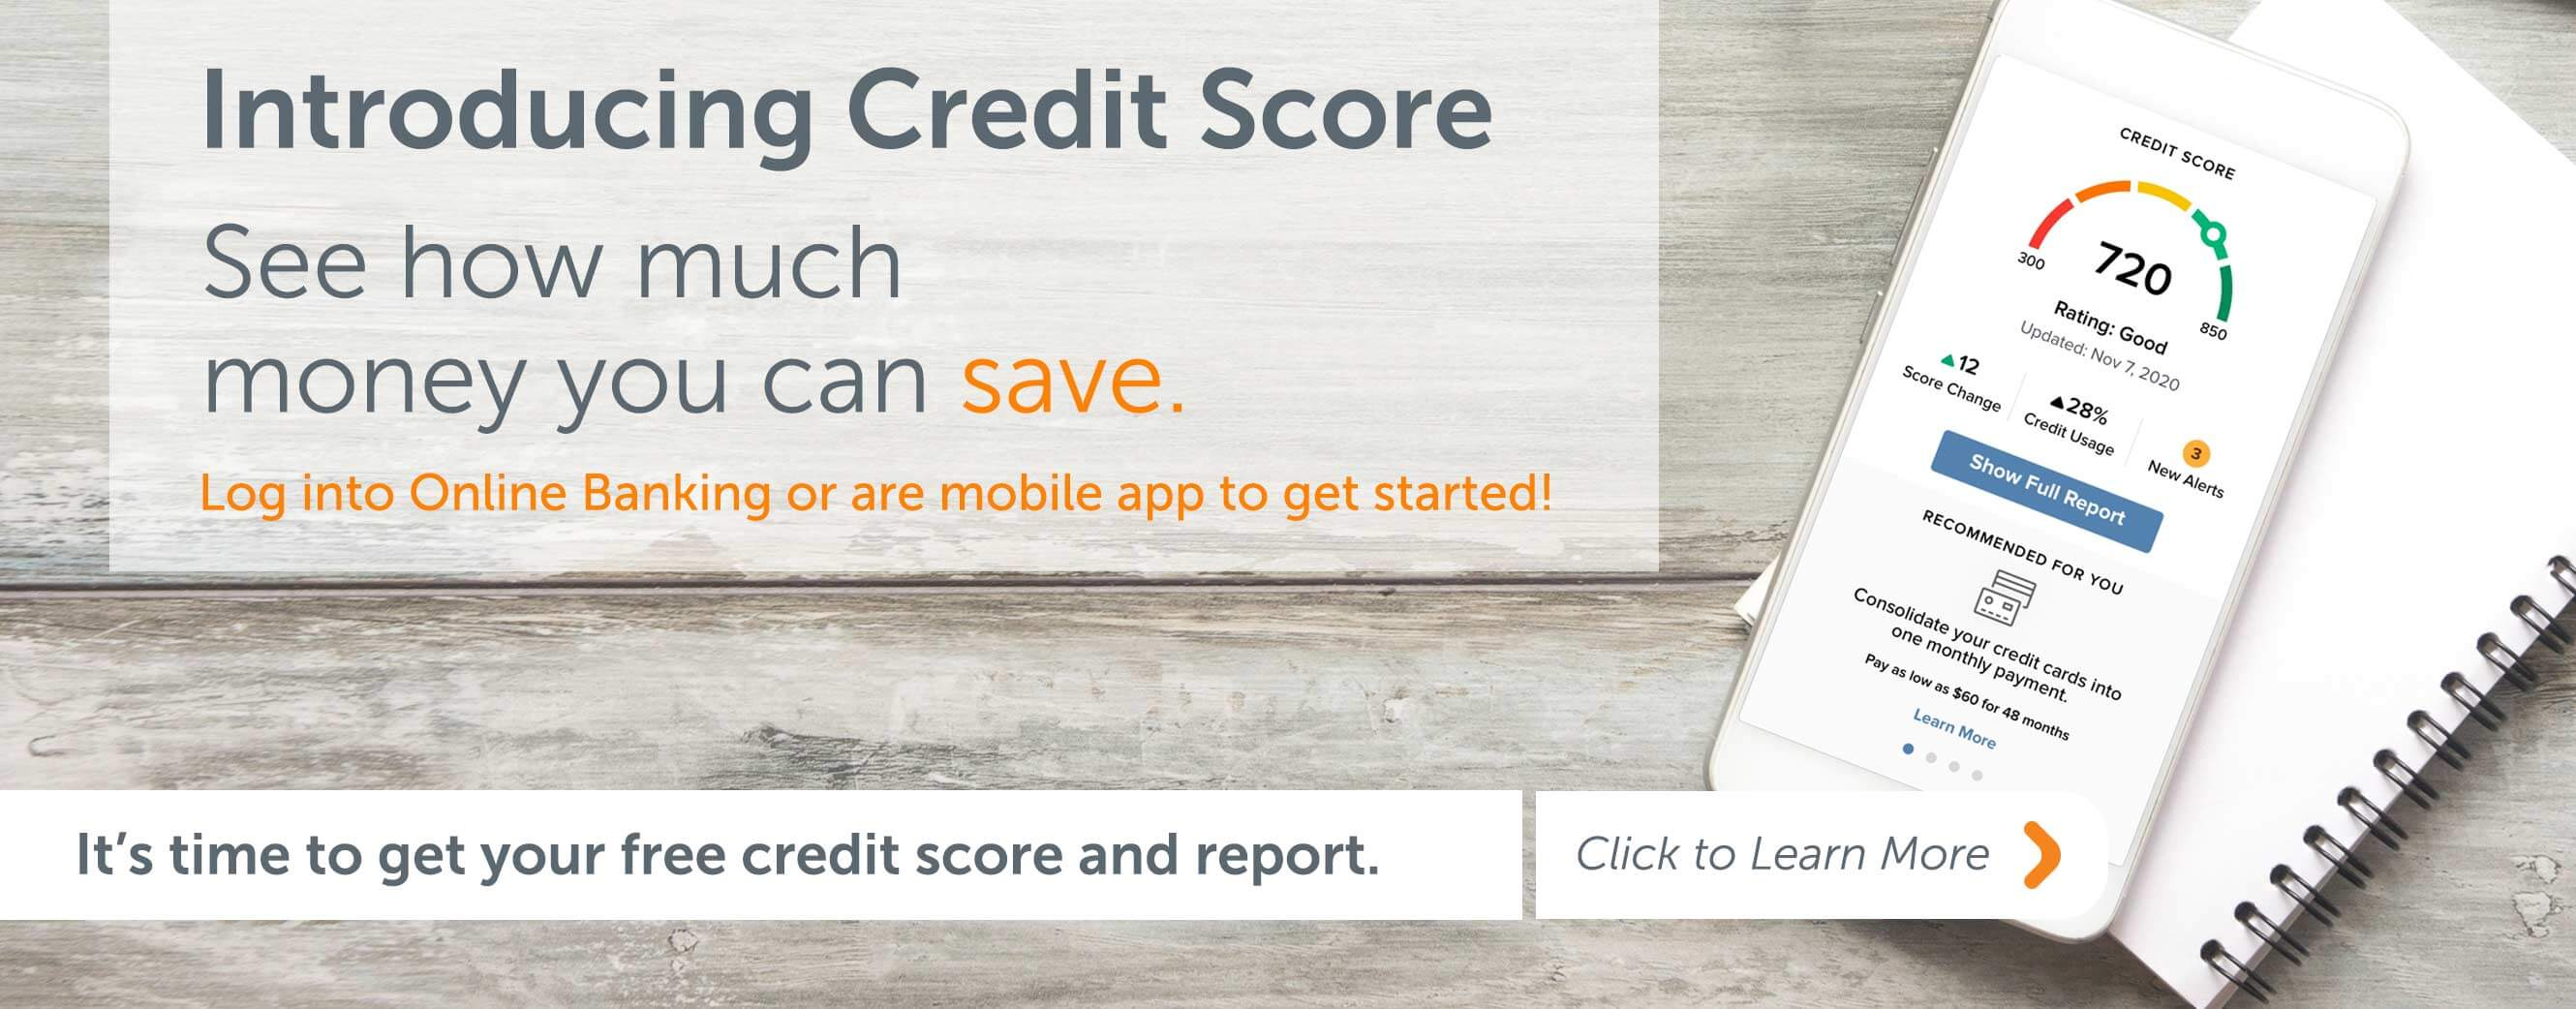 Introducing Credit Score See How much money you can save. It's time to get your free credit score and report. Click to Learn More